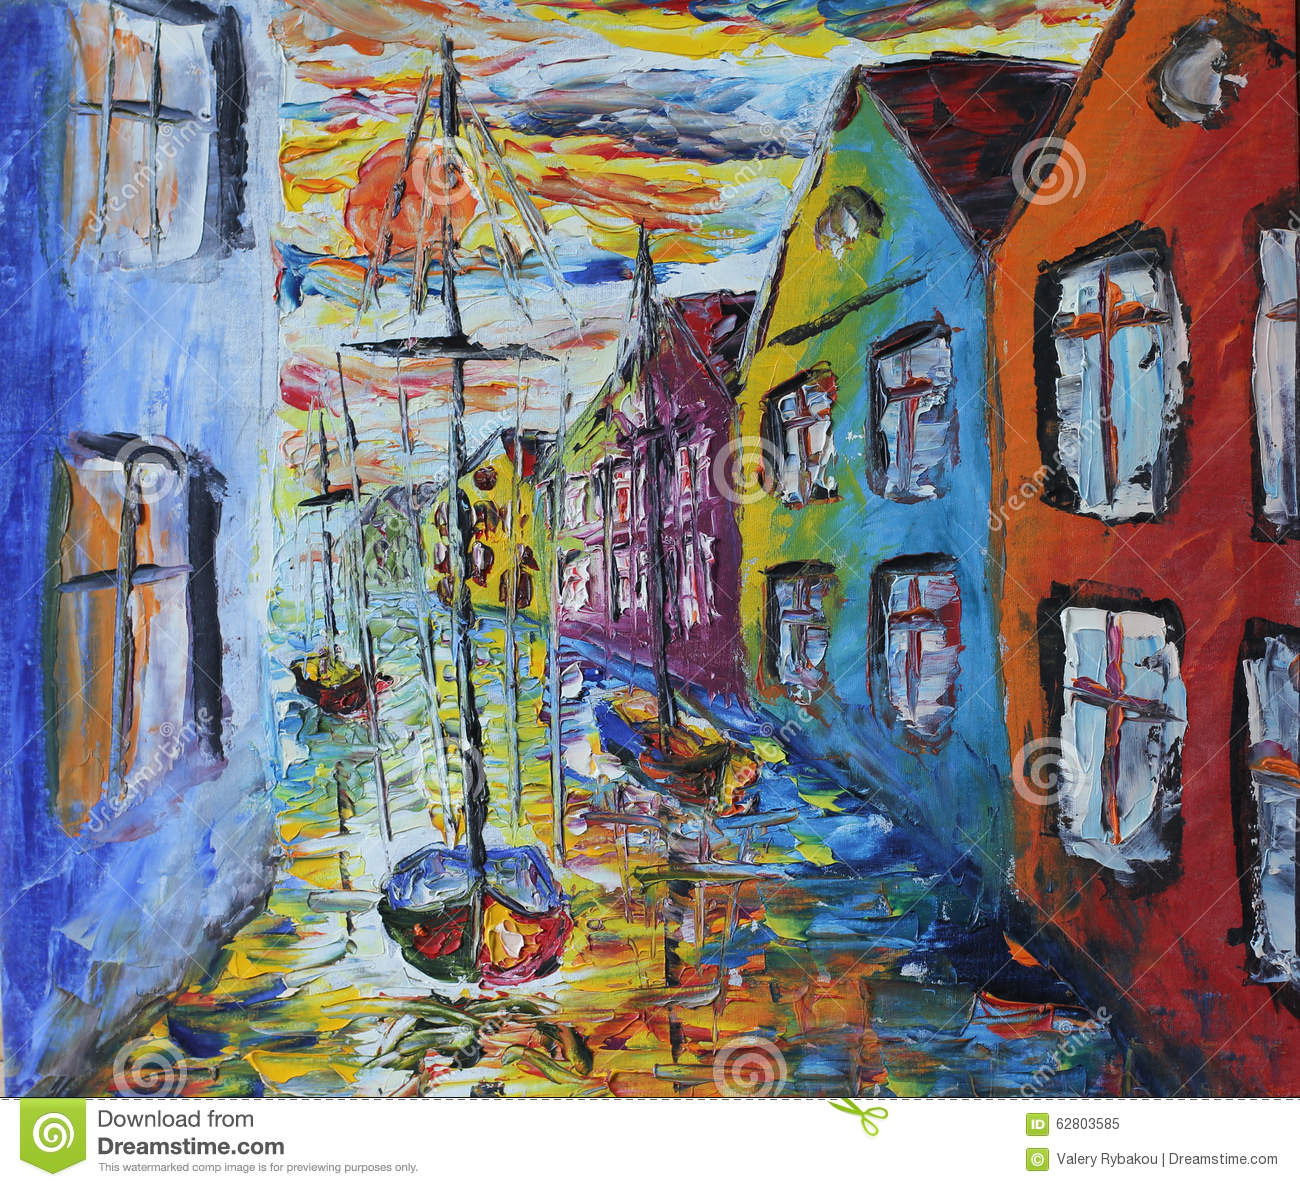 Venice boat floating in the streets oil painting stock for Peinture mural original